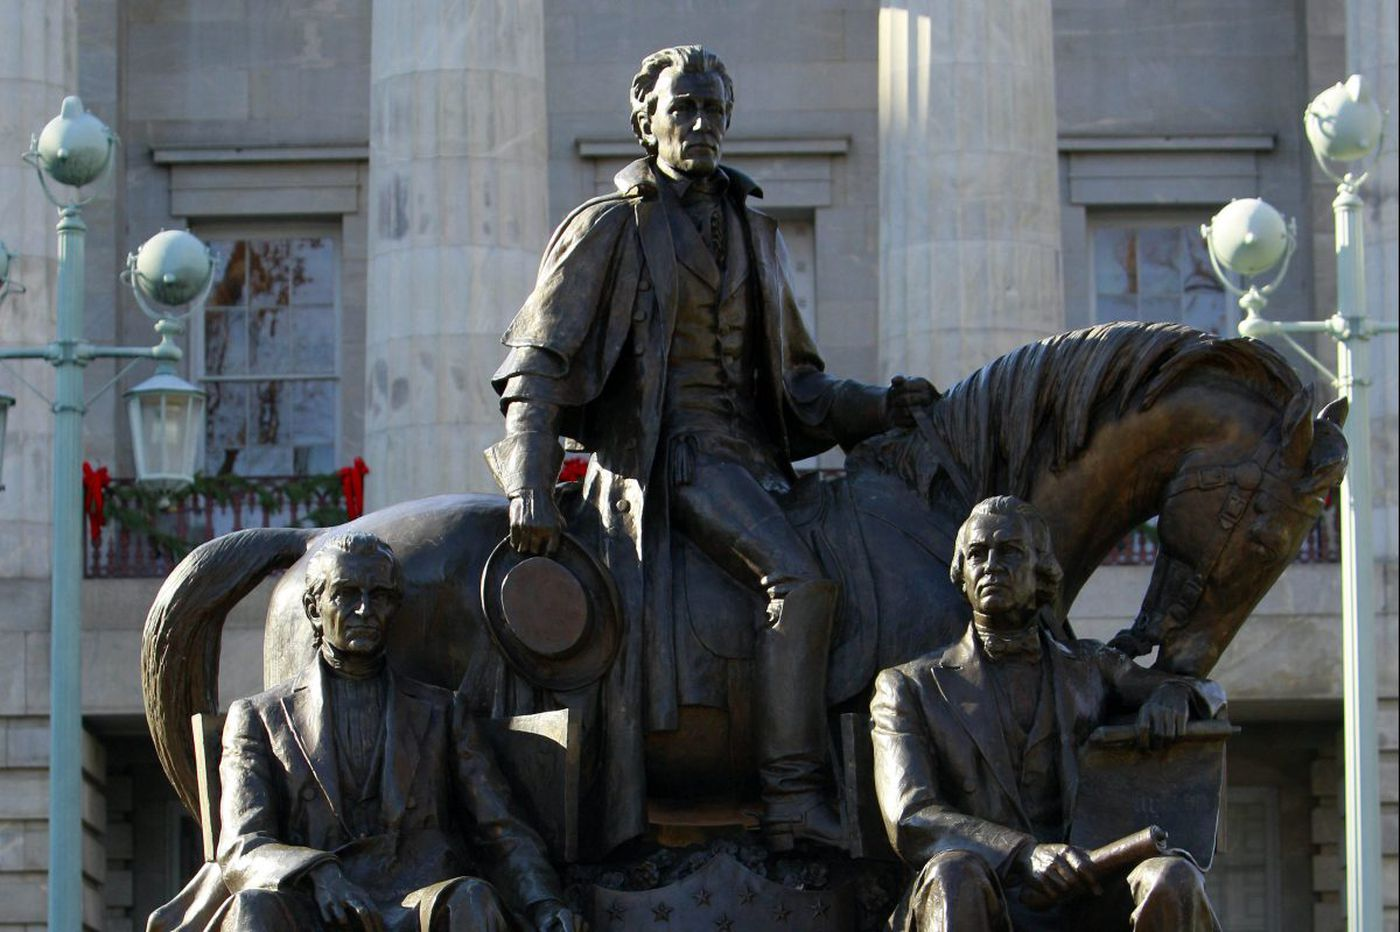 Andrew Jackson, father of a nationalism that plagues U.S. today